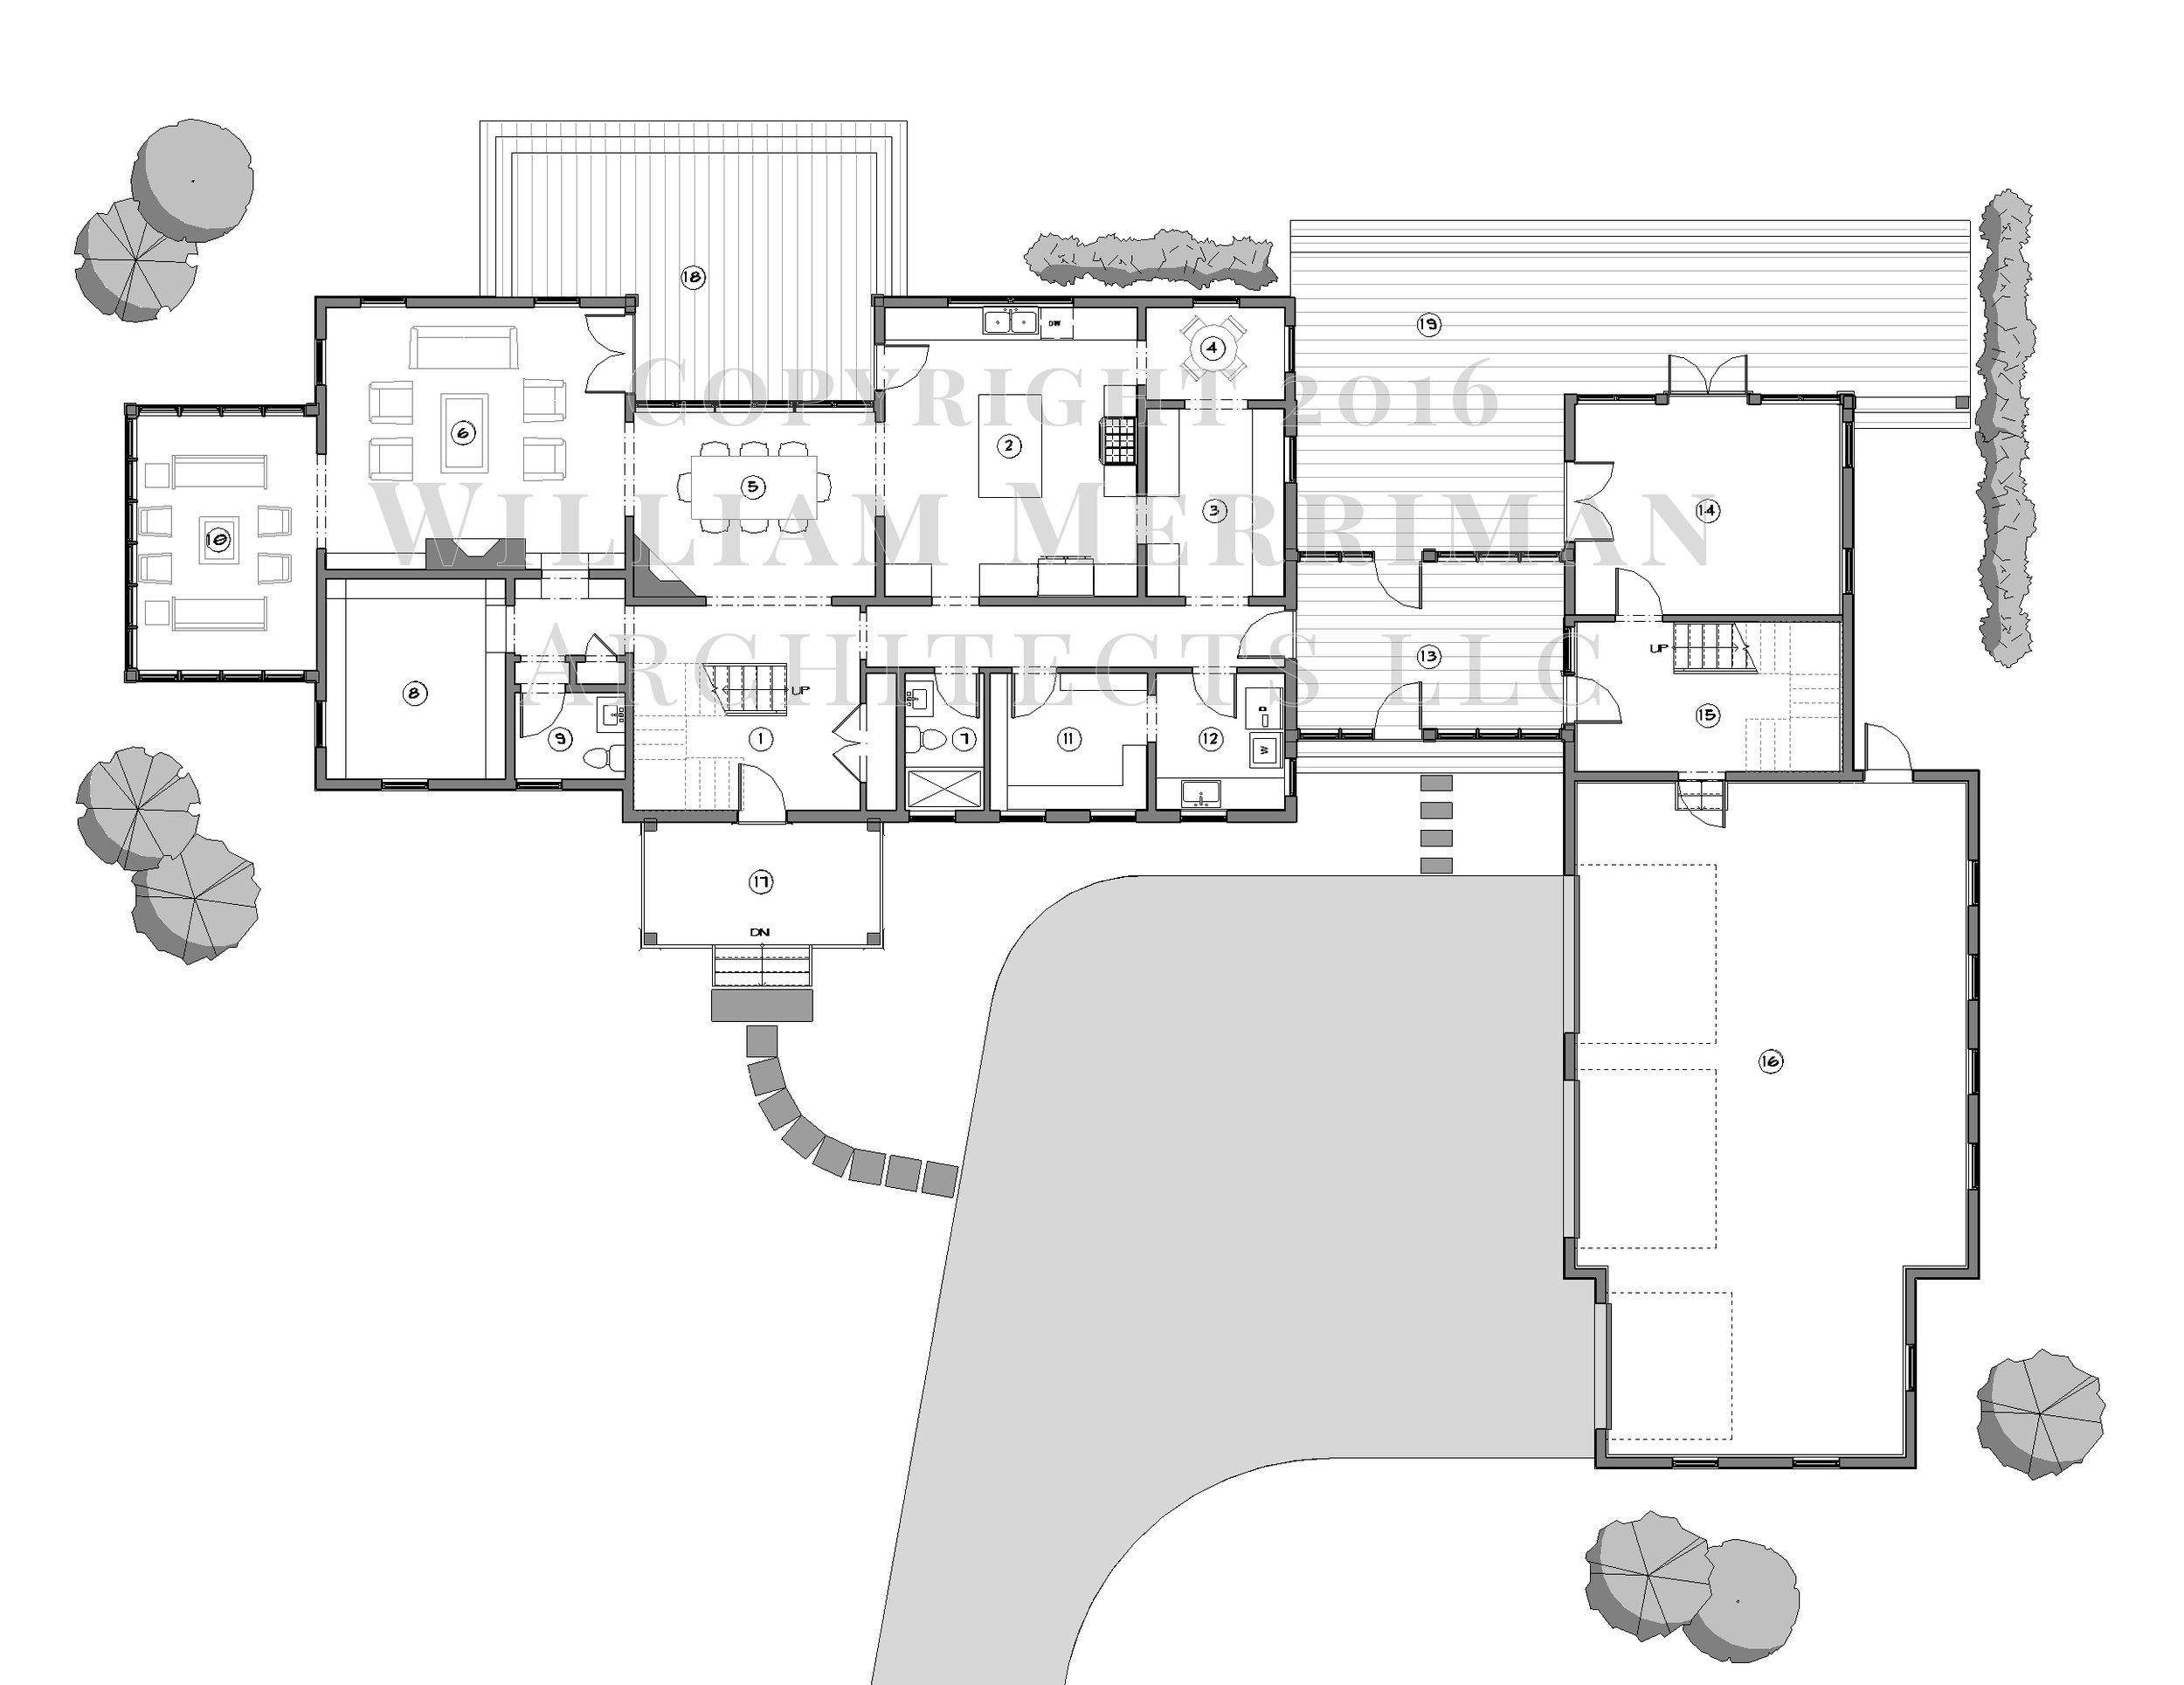 Large Home PLAN.jpg